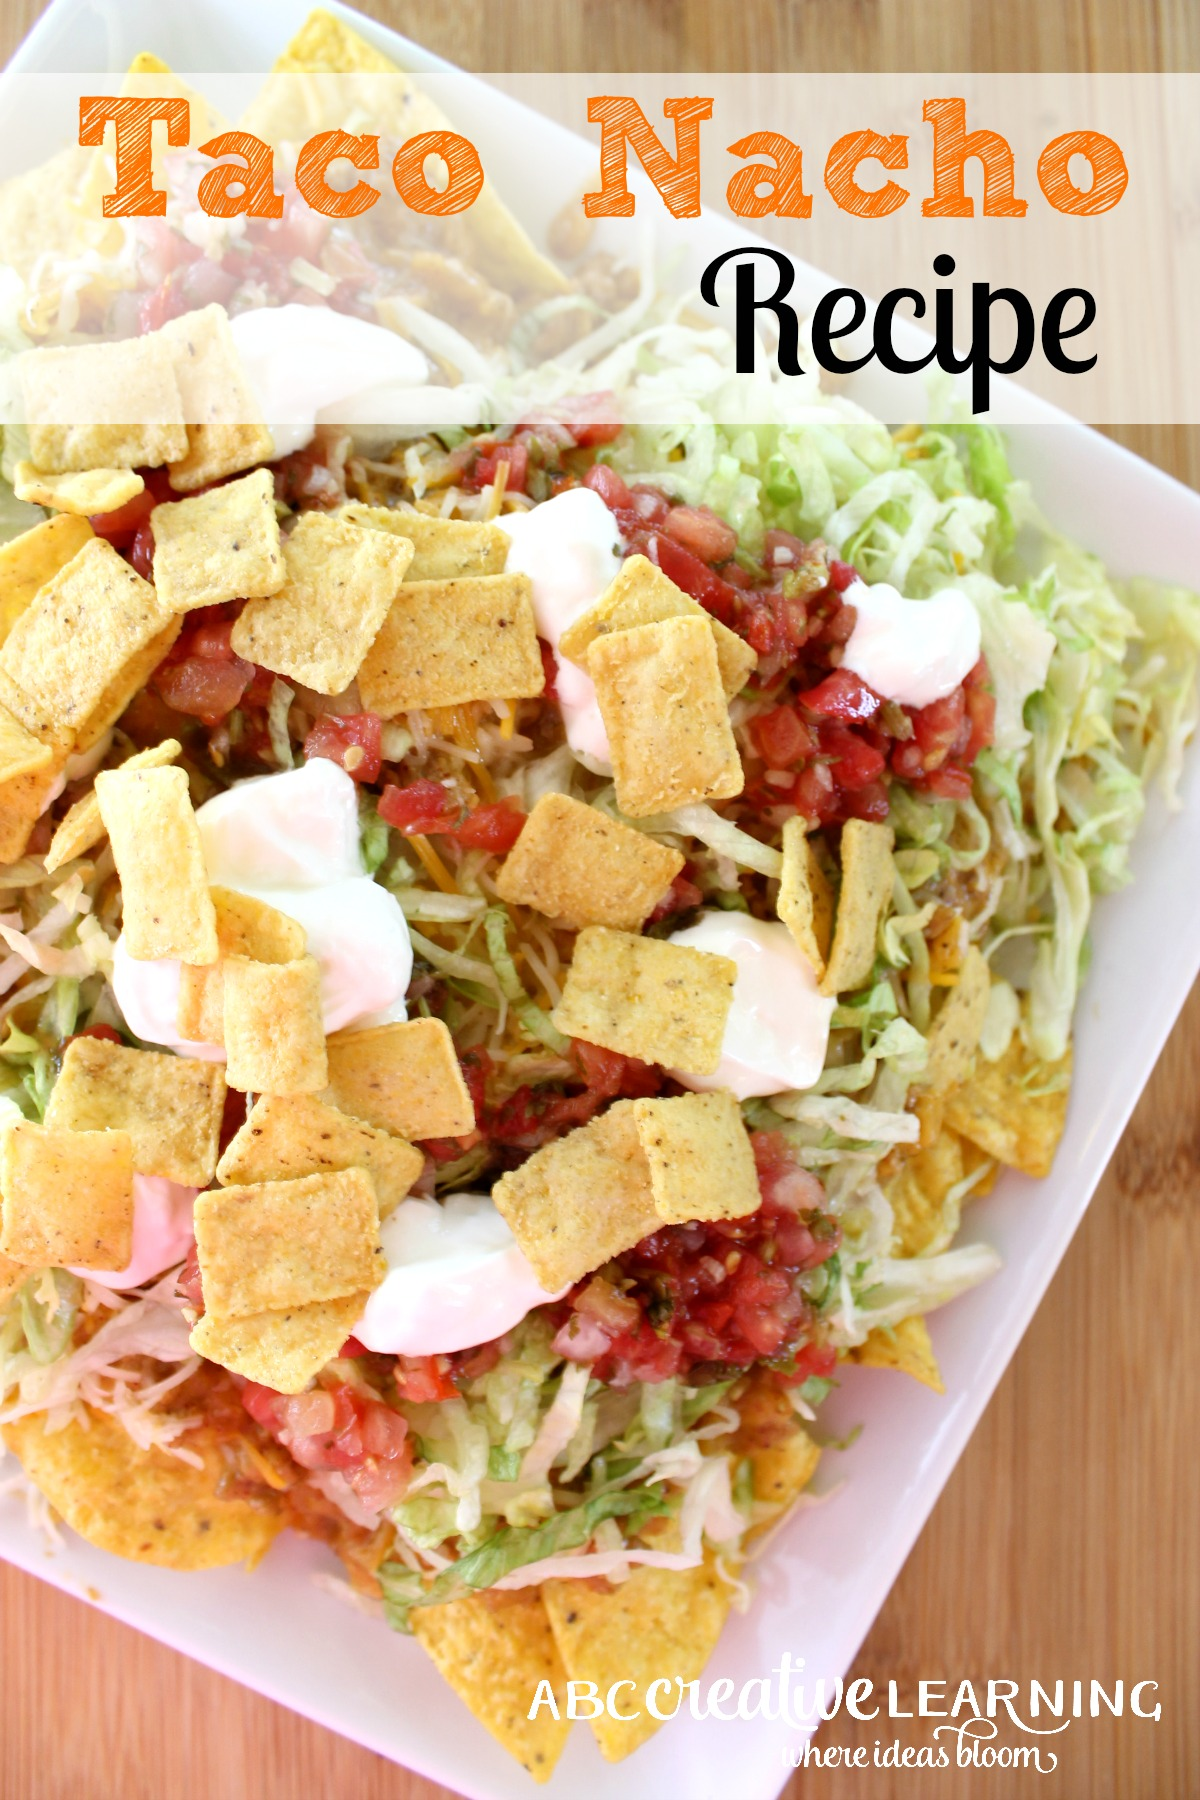 A delicious and Easy Taco Nacho Recipe perfect for get togethers! The perfect recipe for sharing! - abccreativelearning.com